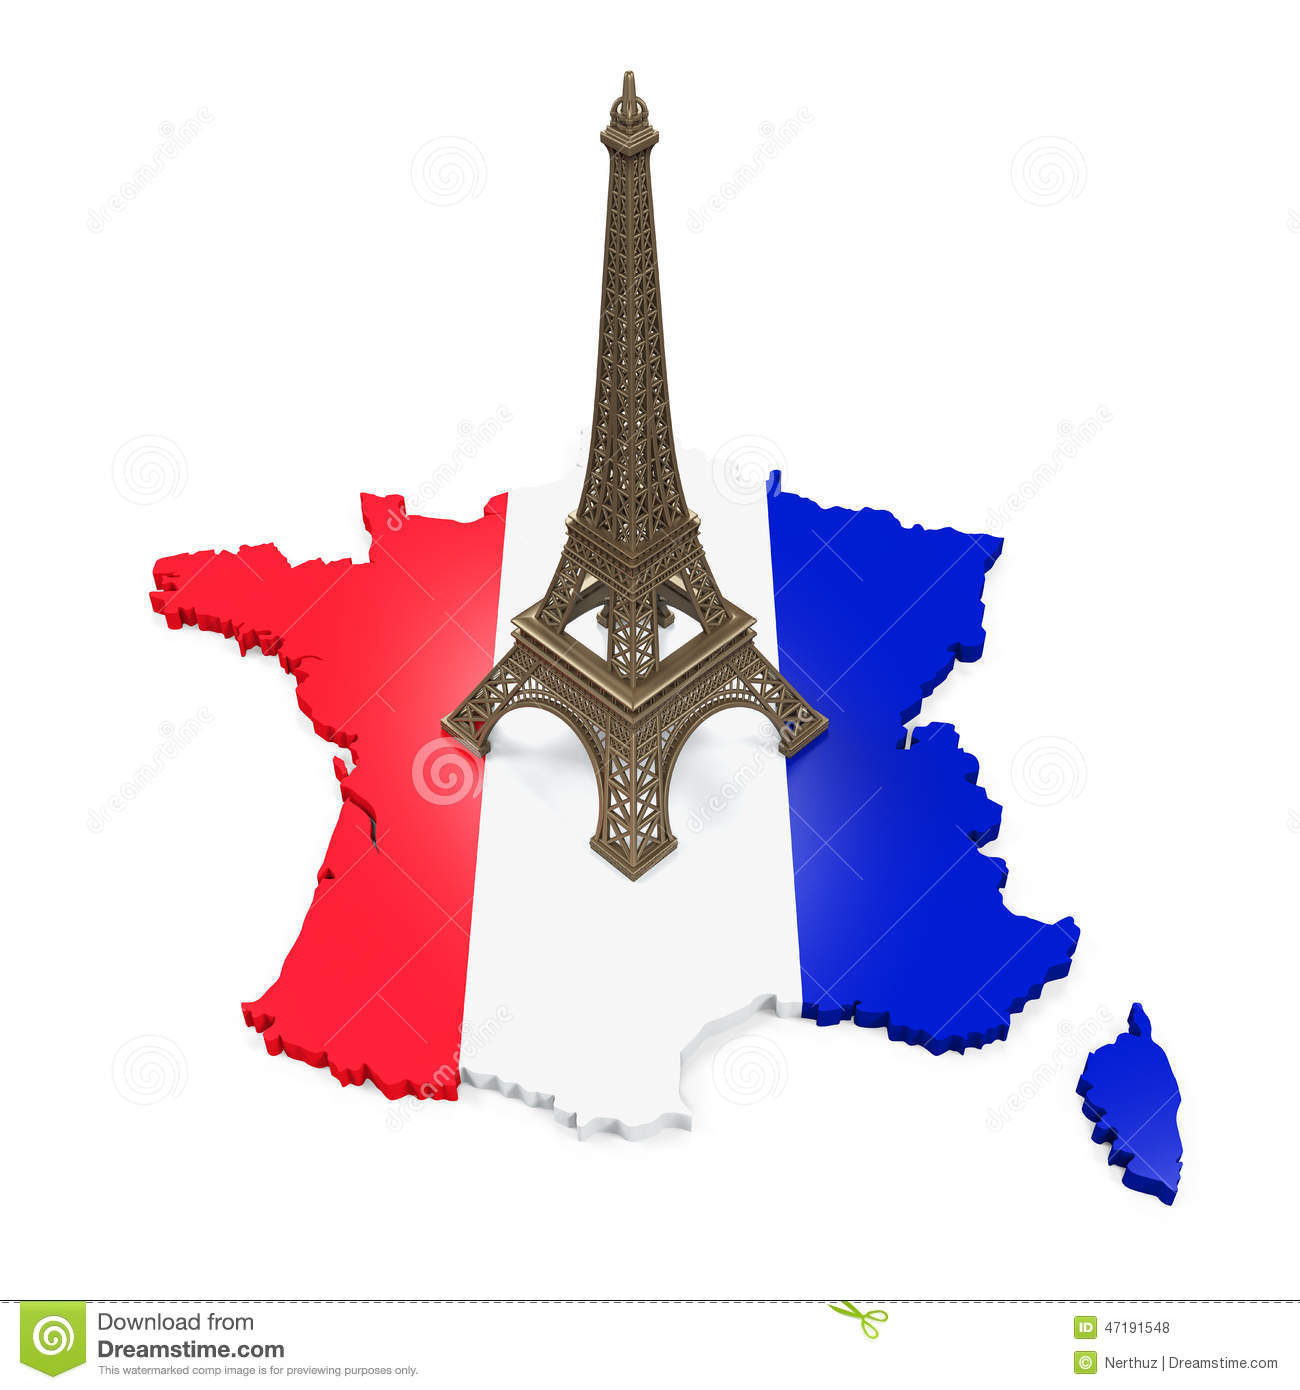 Map Of France Eiffel Tower.Map Of France And Eiffel Tower Stock Illustration Illustration Of